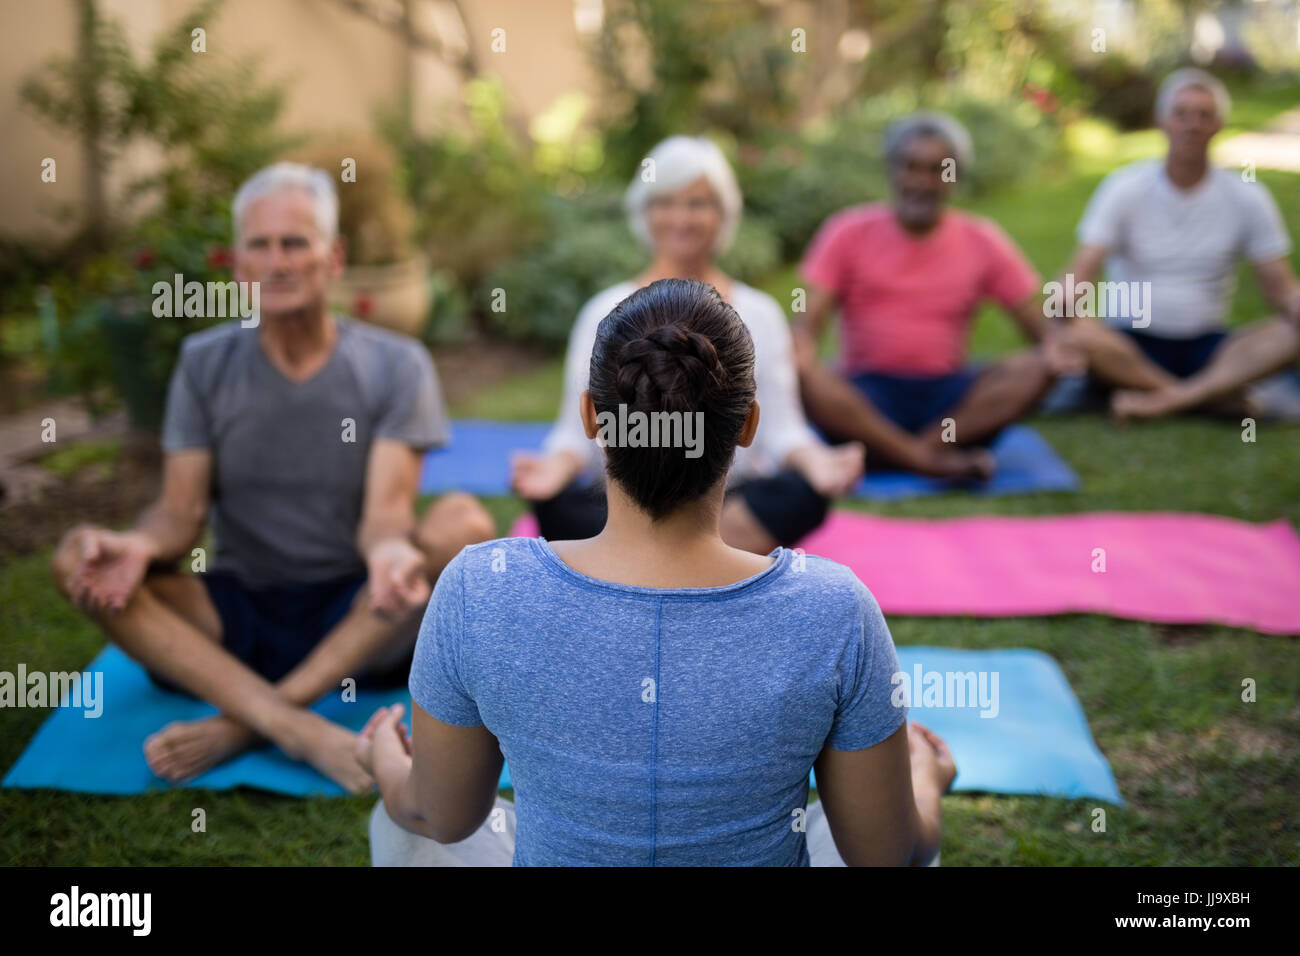 Rear view of trainer guiding senior people in meditating exercise at park - Stock Image